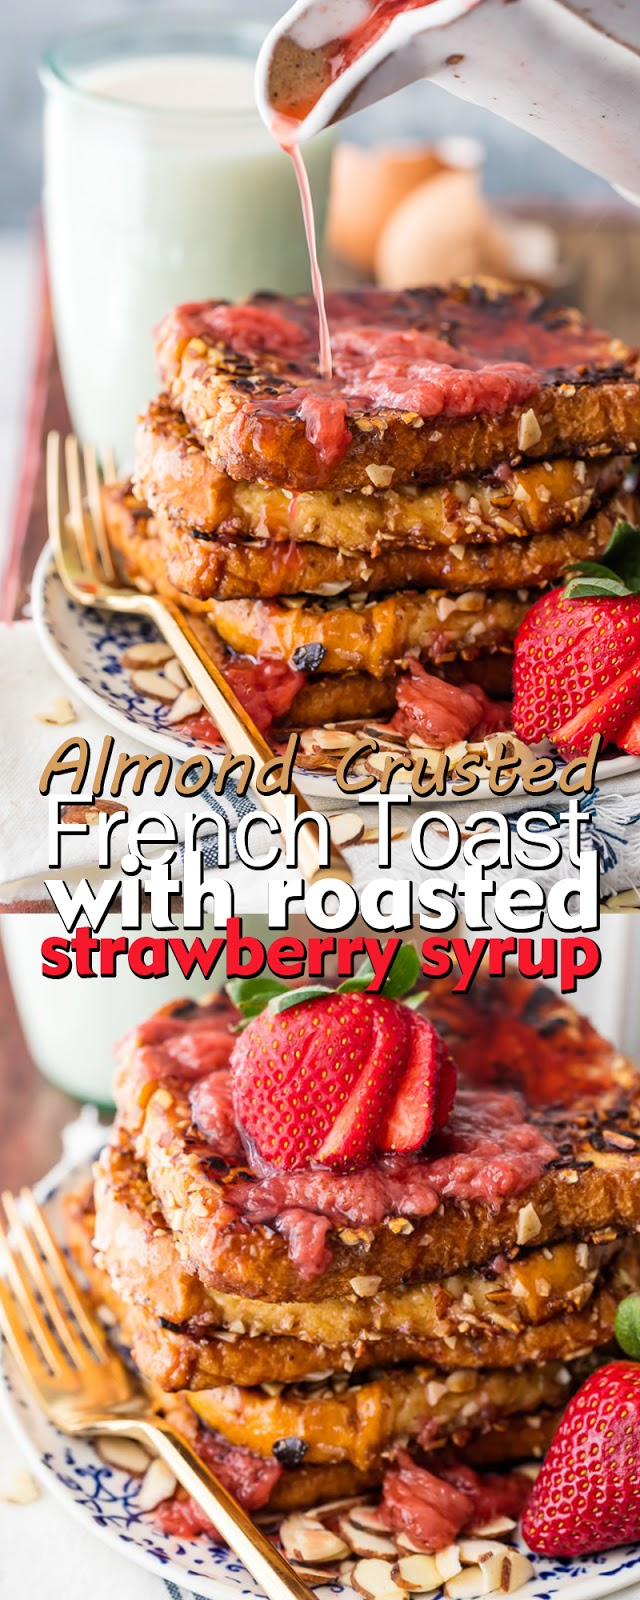 ALMOND CRUSTED FRENCH TOAST WITH ROASTED STRAWBERRY SYRUP